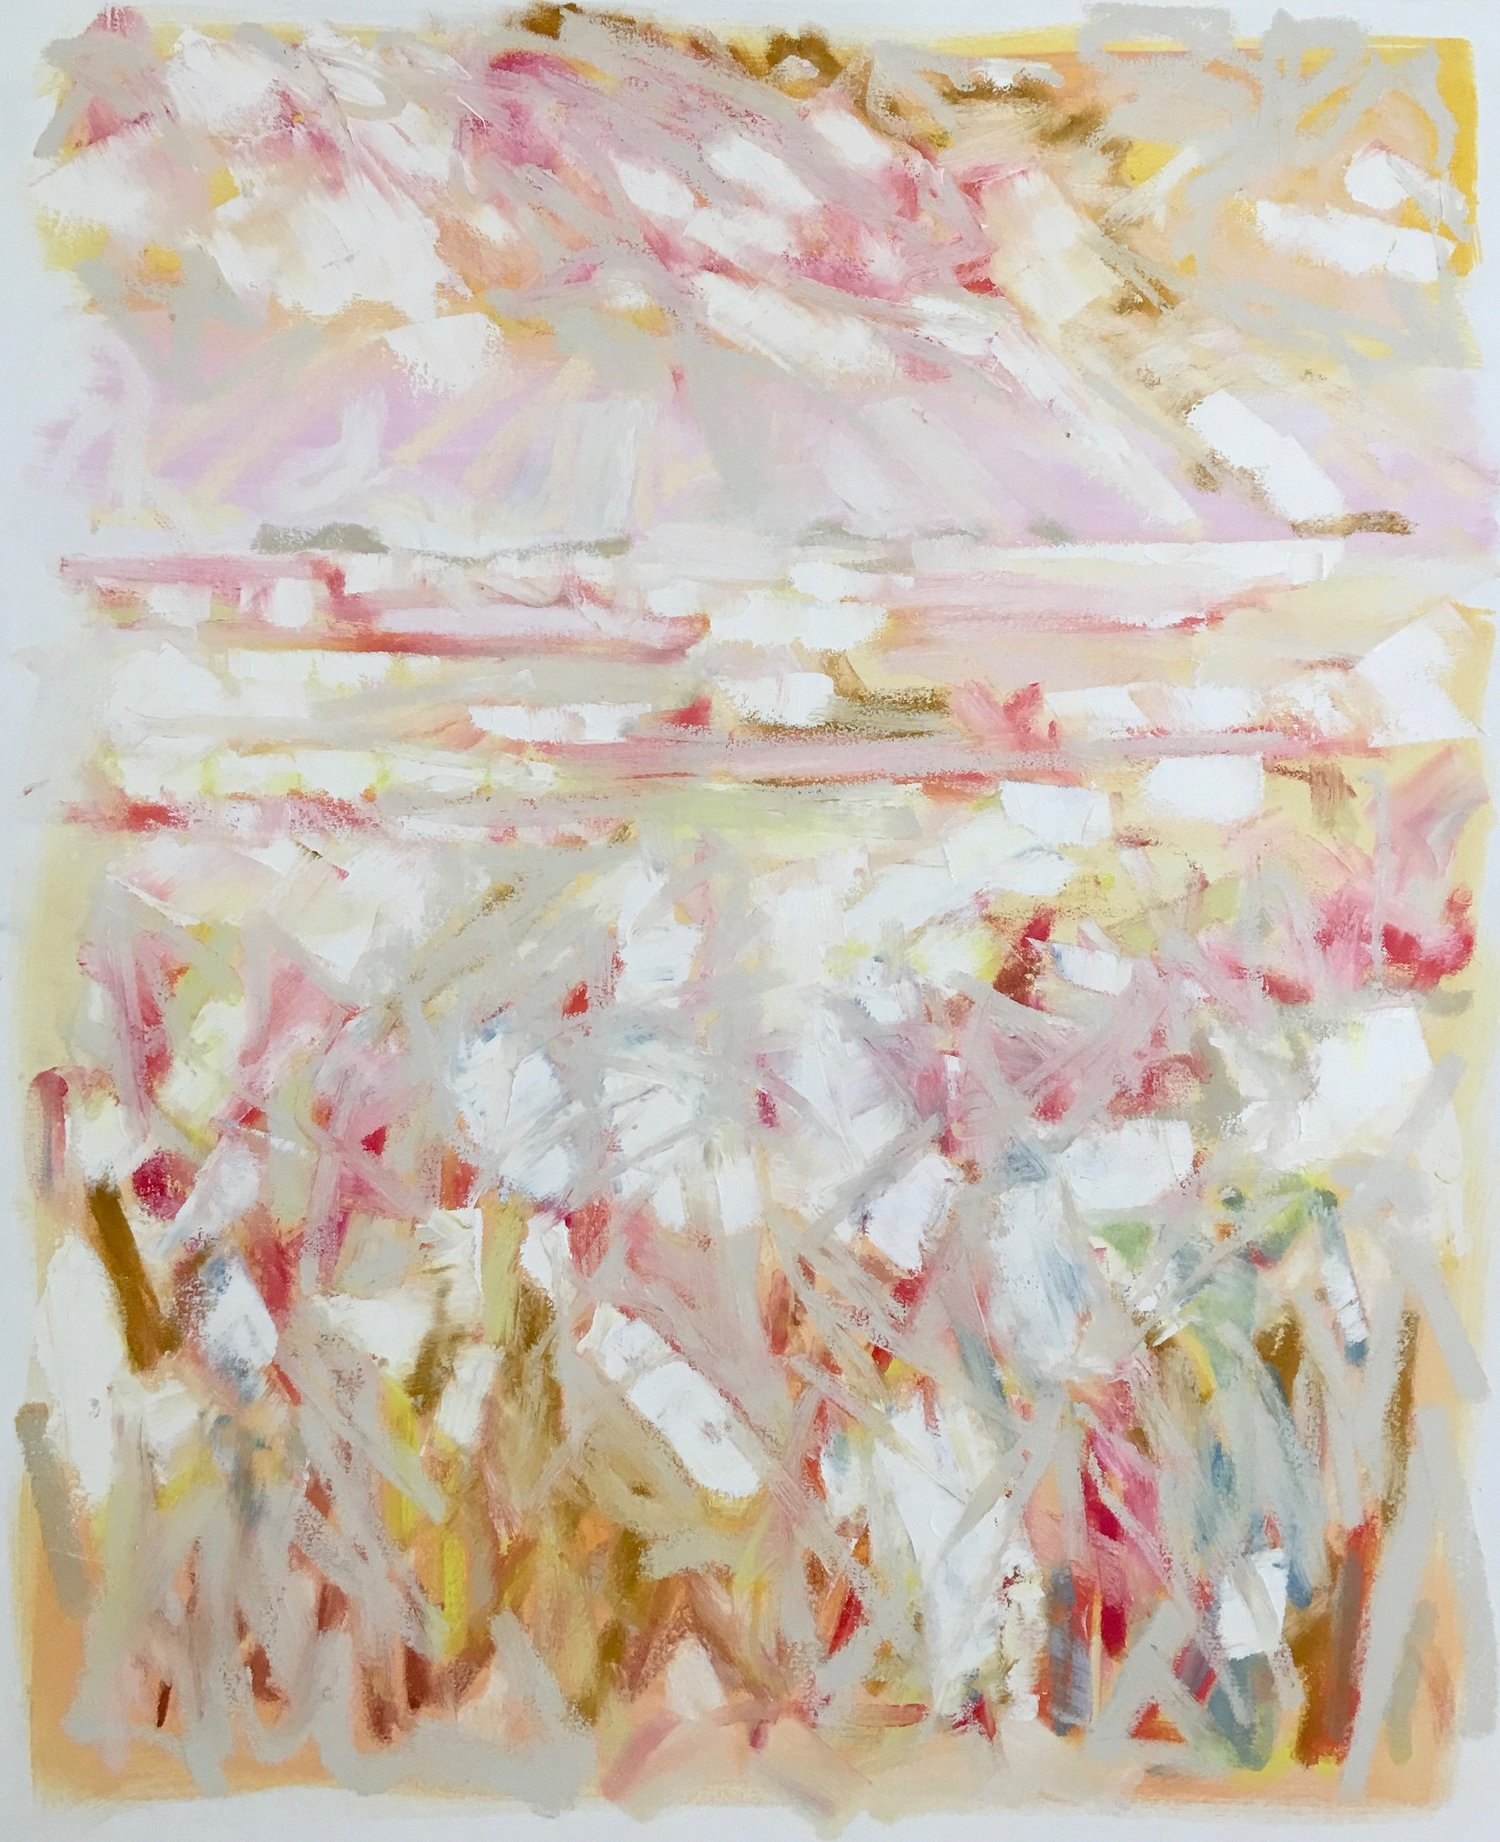 Gentle+Glow,+36+x+30+inches,+Mixed+Media+on+Canvas,+$3,000.jpg